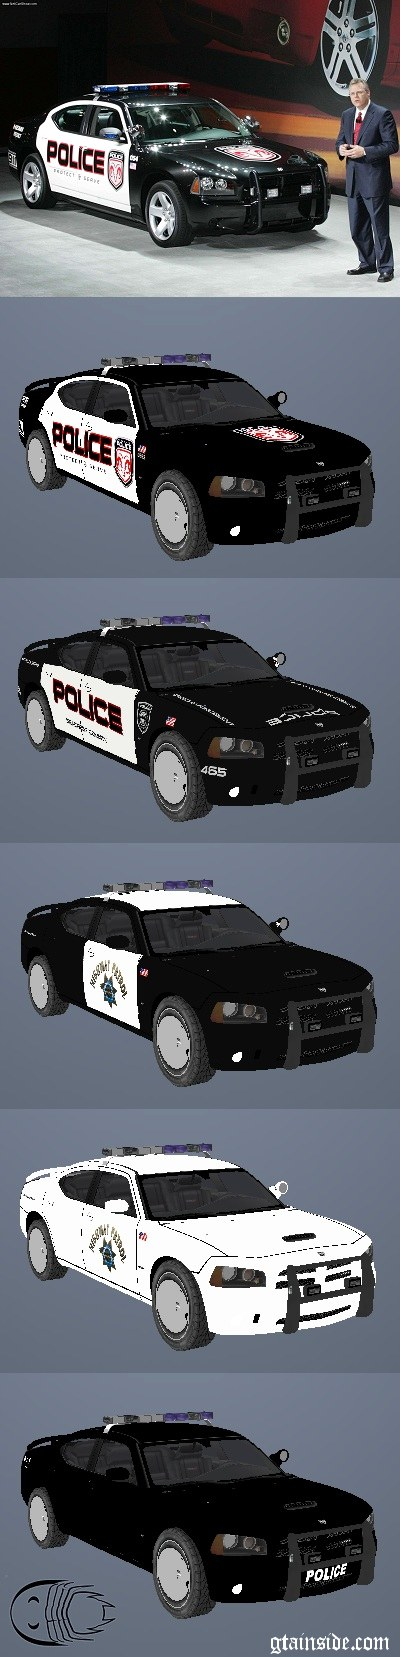 Paintjobs for Dodge Charger Police 2005